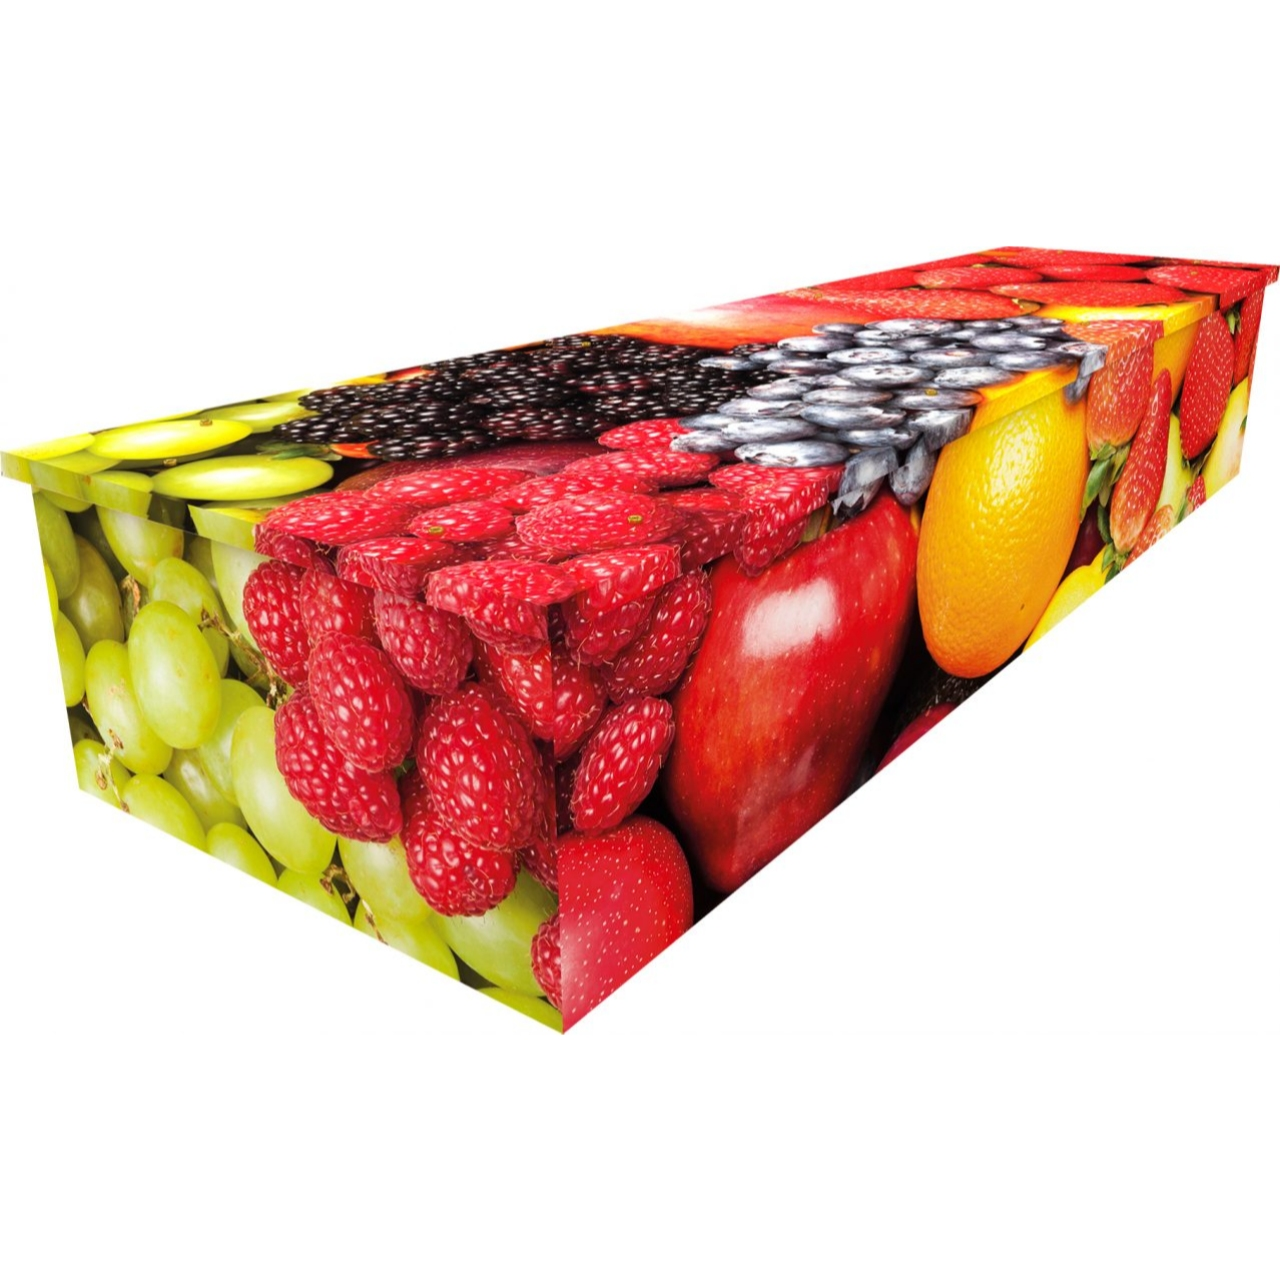 Fruit Cardboard Coffin